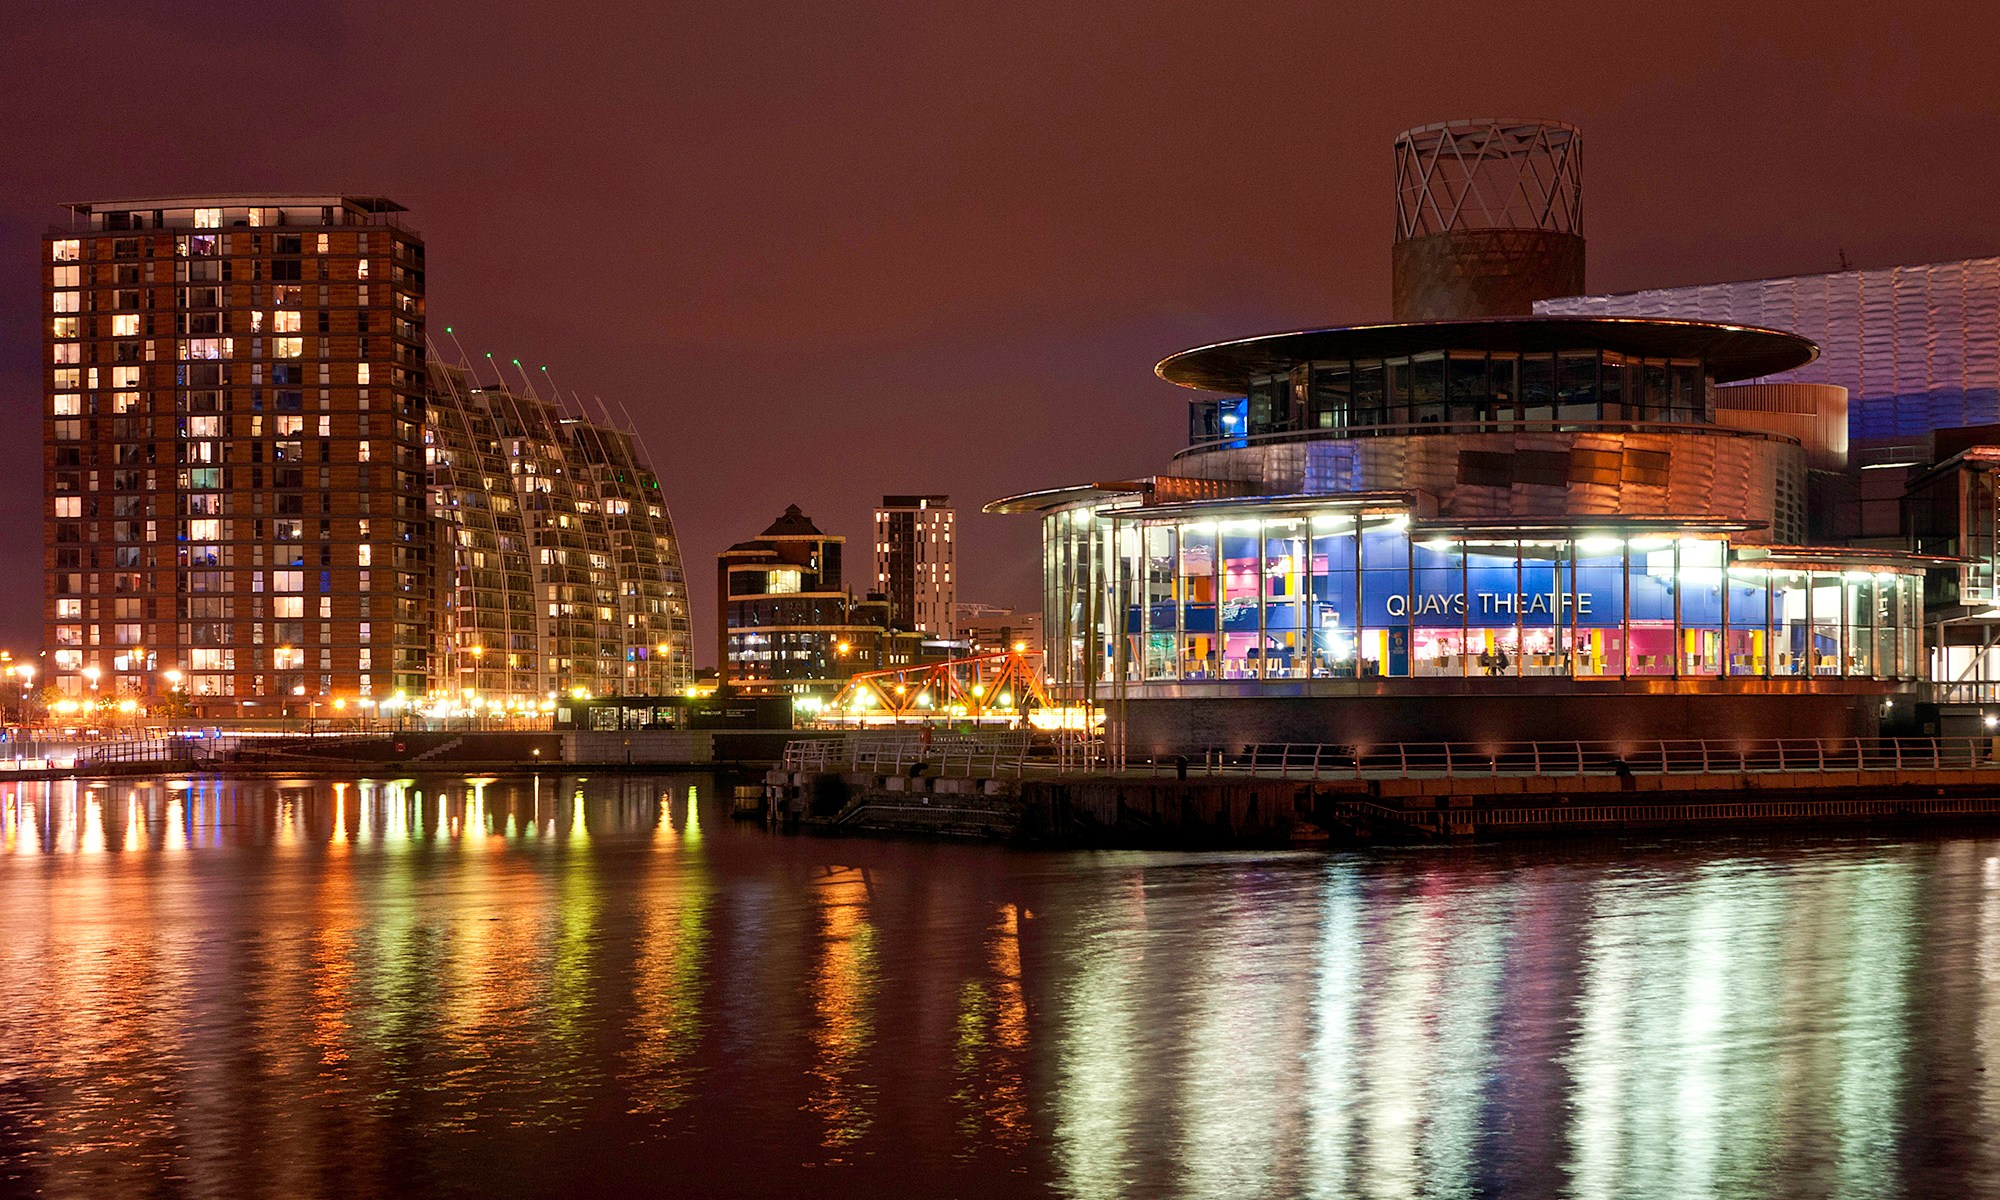 Quays Theatre at Night